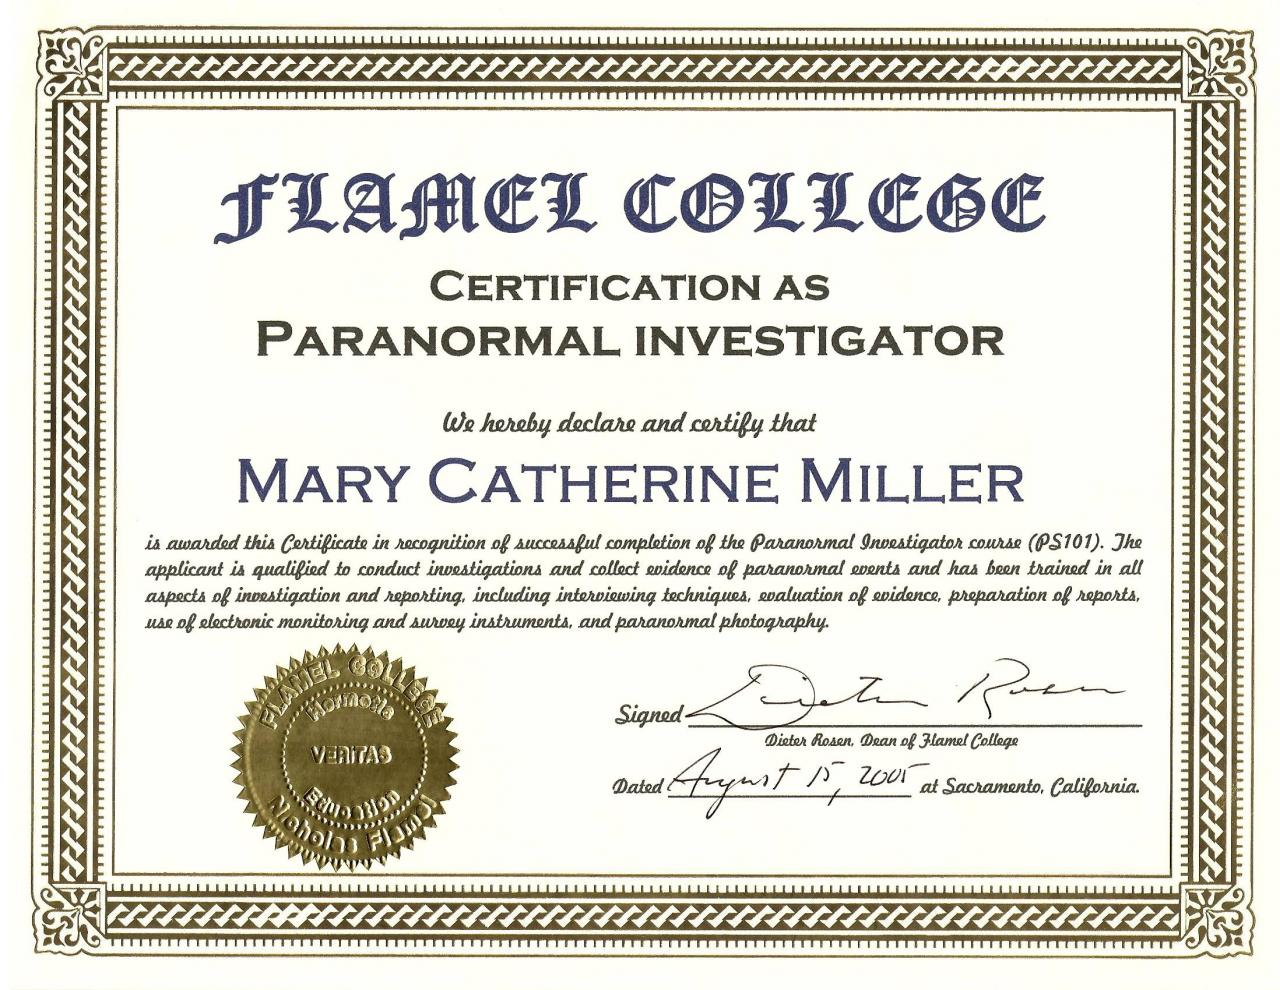 Paranormal Investigator Cover Letter Veterinary Desktop Support